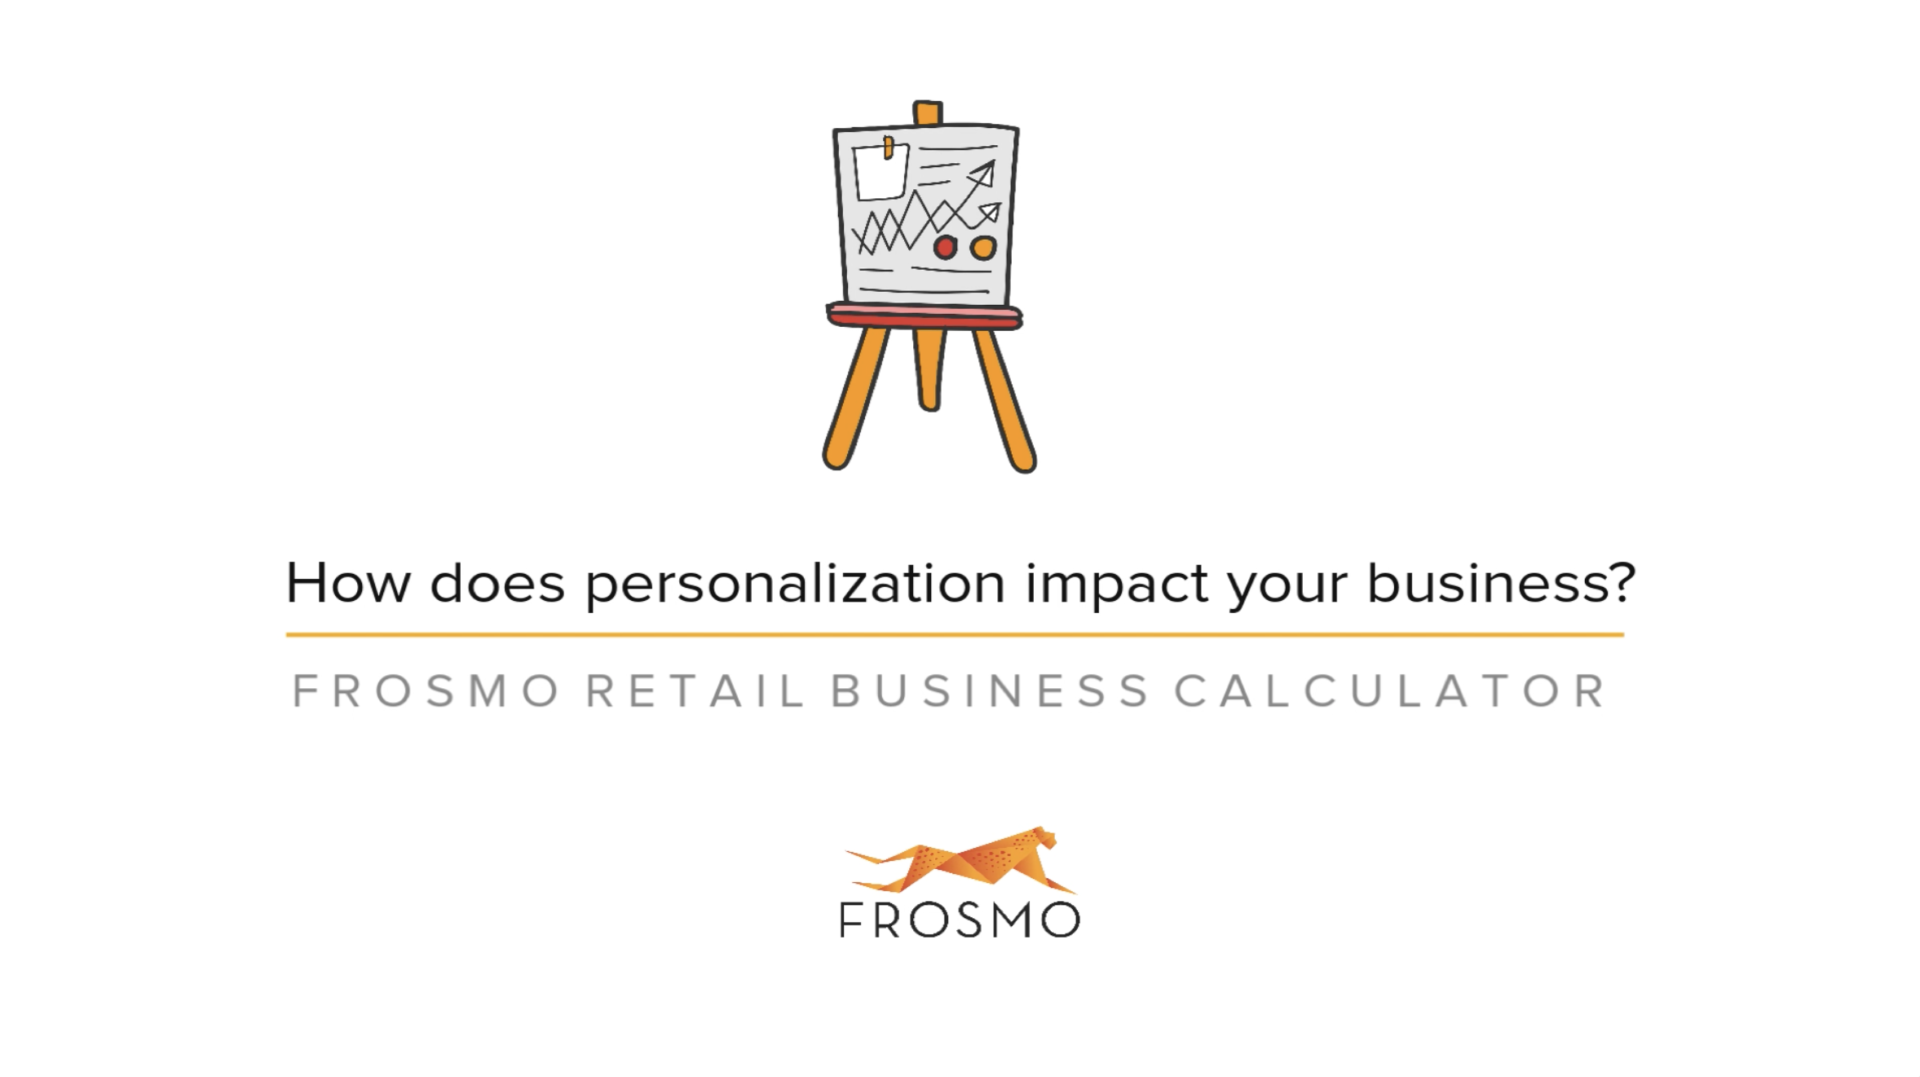 Business-calculator-retail-image.png